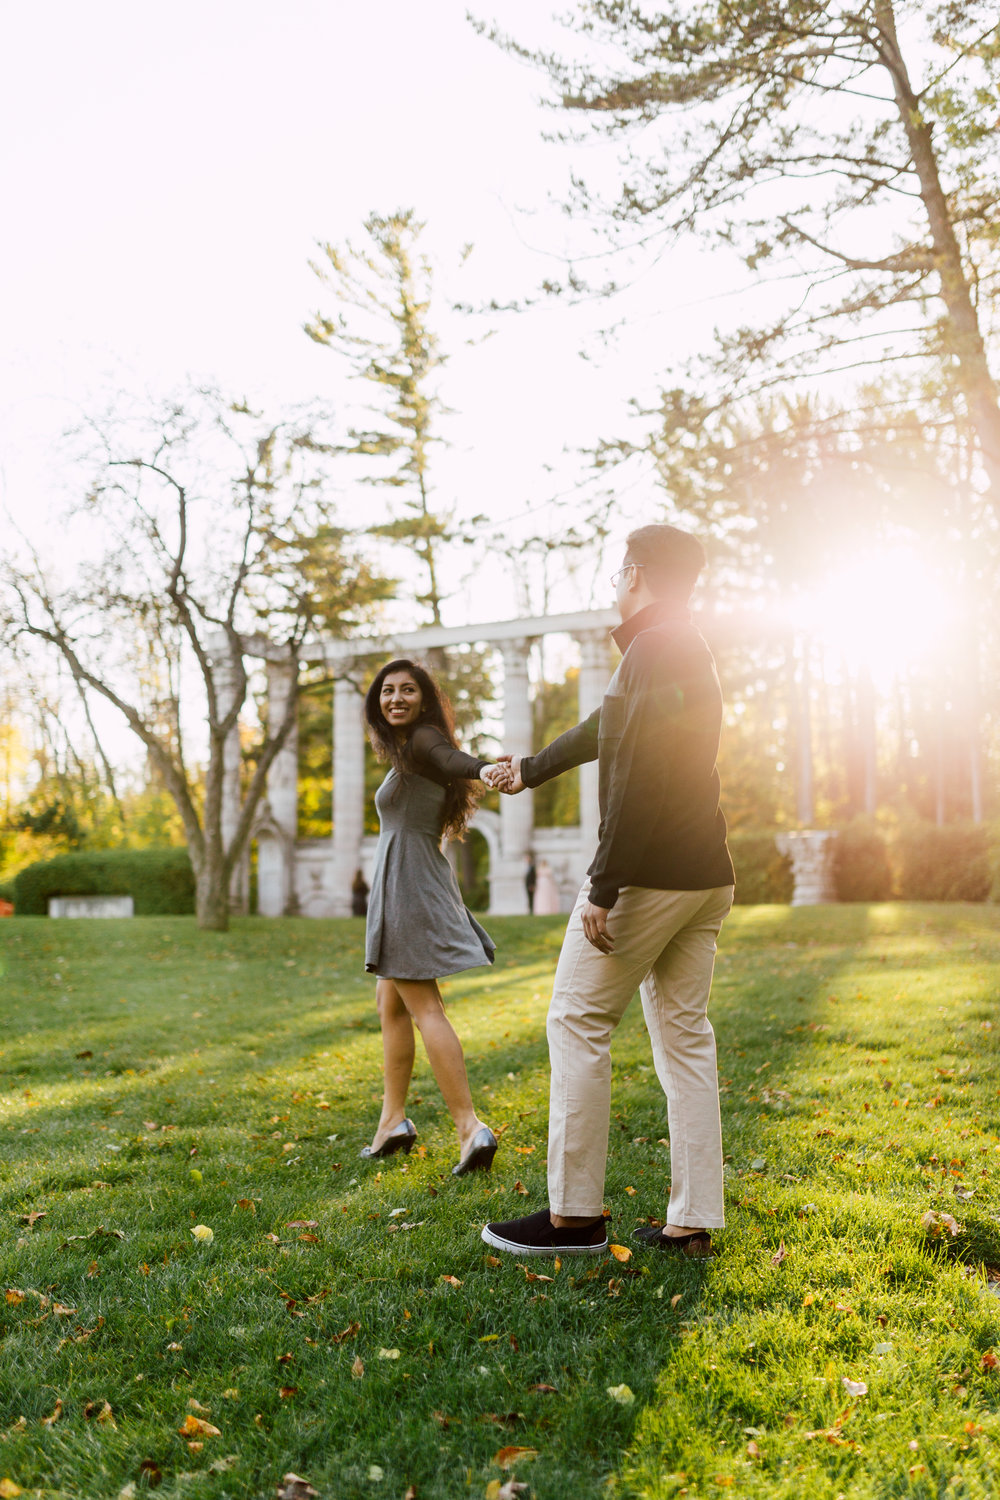 Engagementphotography_Final_GuildPark_Youthebestphotography-5005.jpg